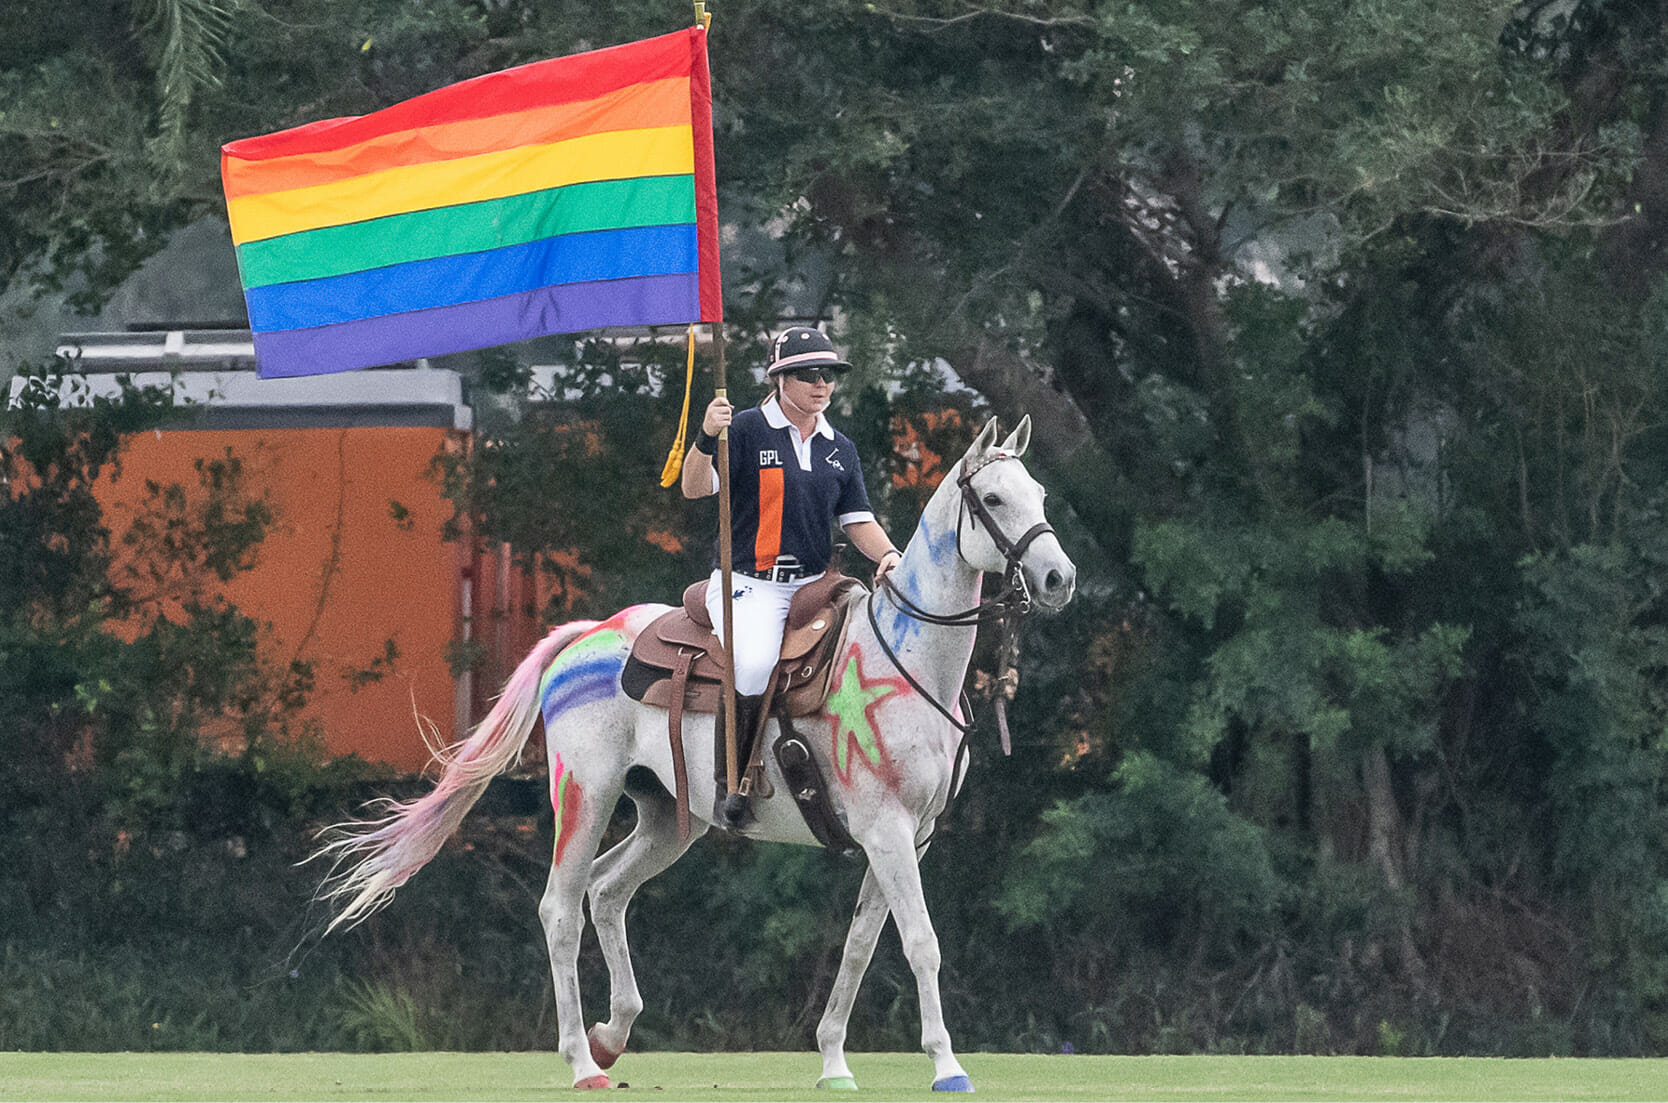 The Ultimate Gay Polo Tournament Gallops Back onto the Scene April 4-7, 2019